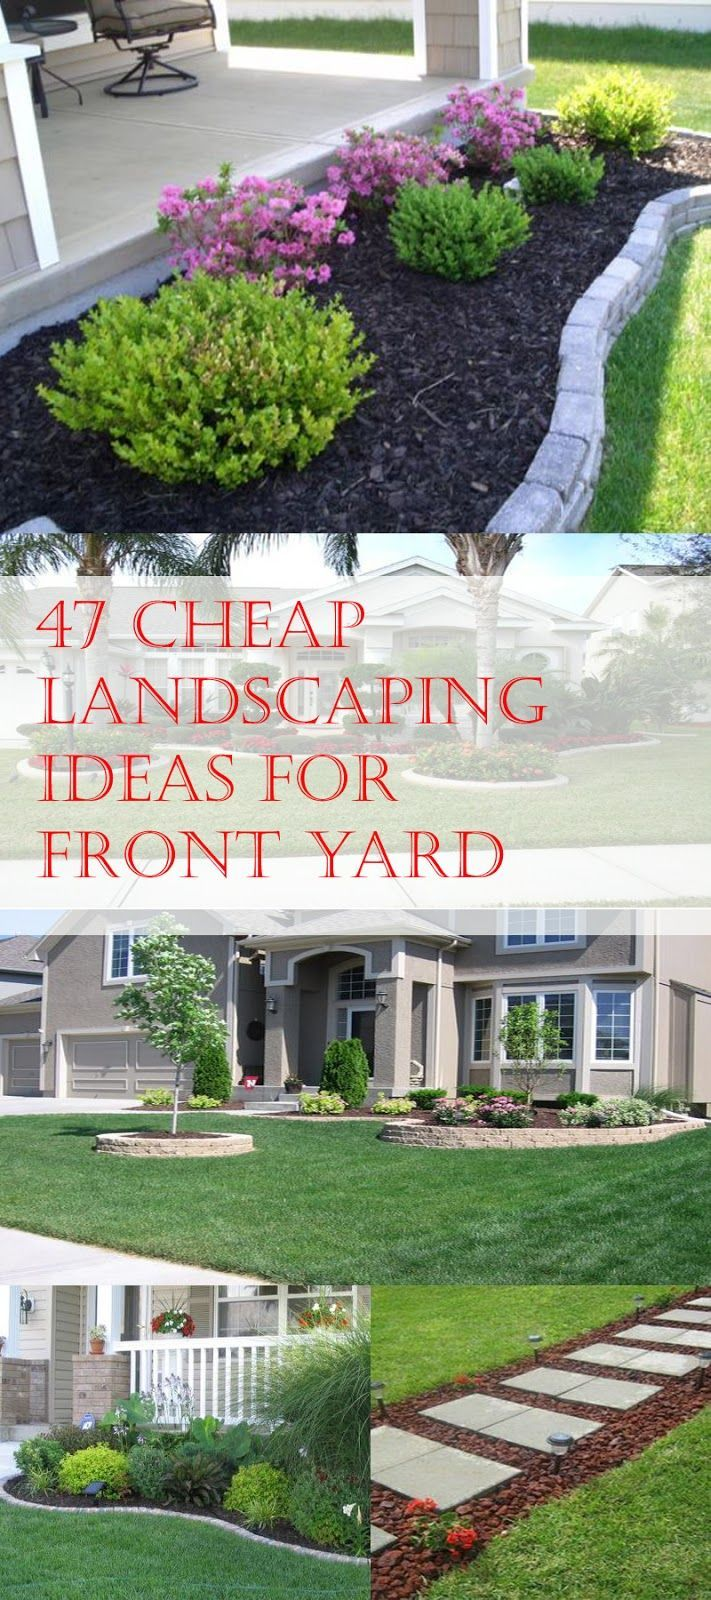 47 Cheap Landscaping Ideas For Front Yard  Ad